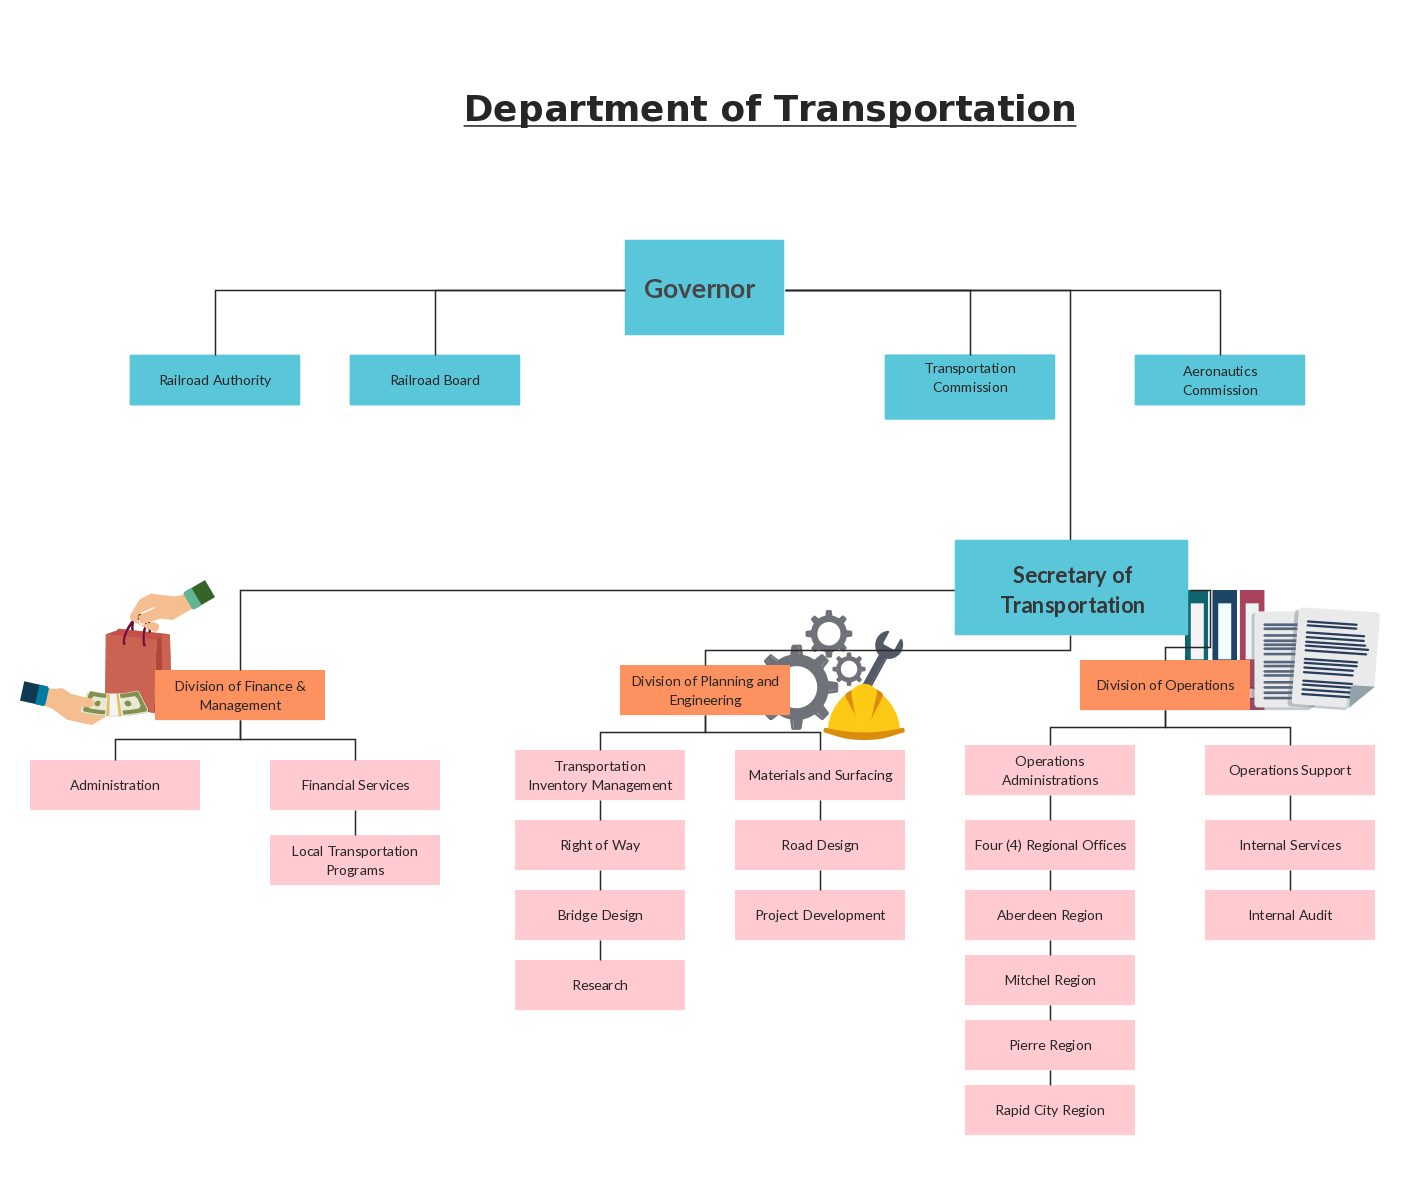 Organization hierarchy in the department of Transportation